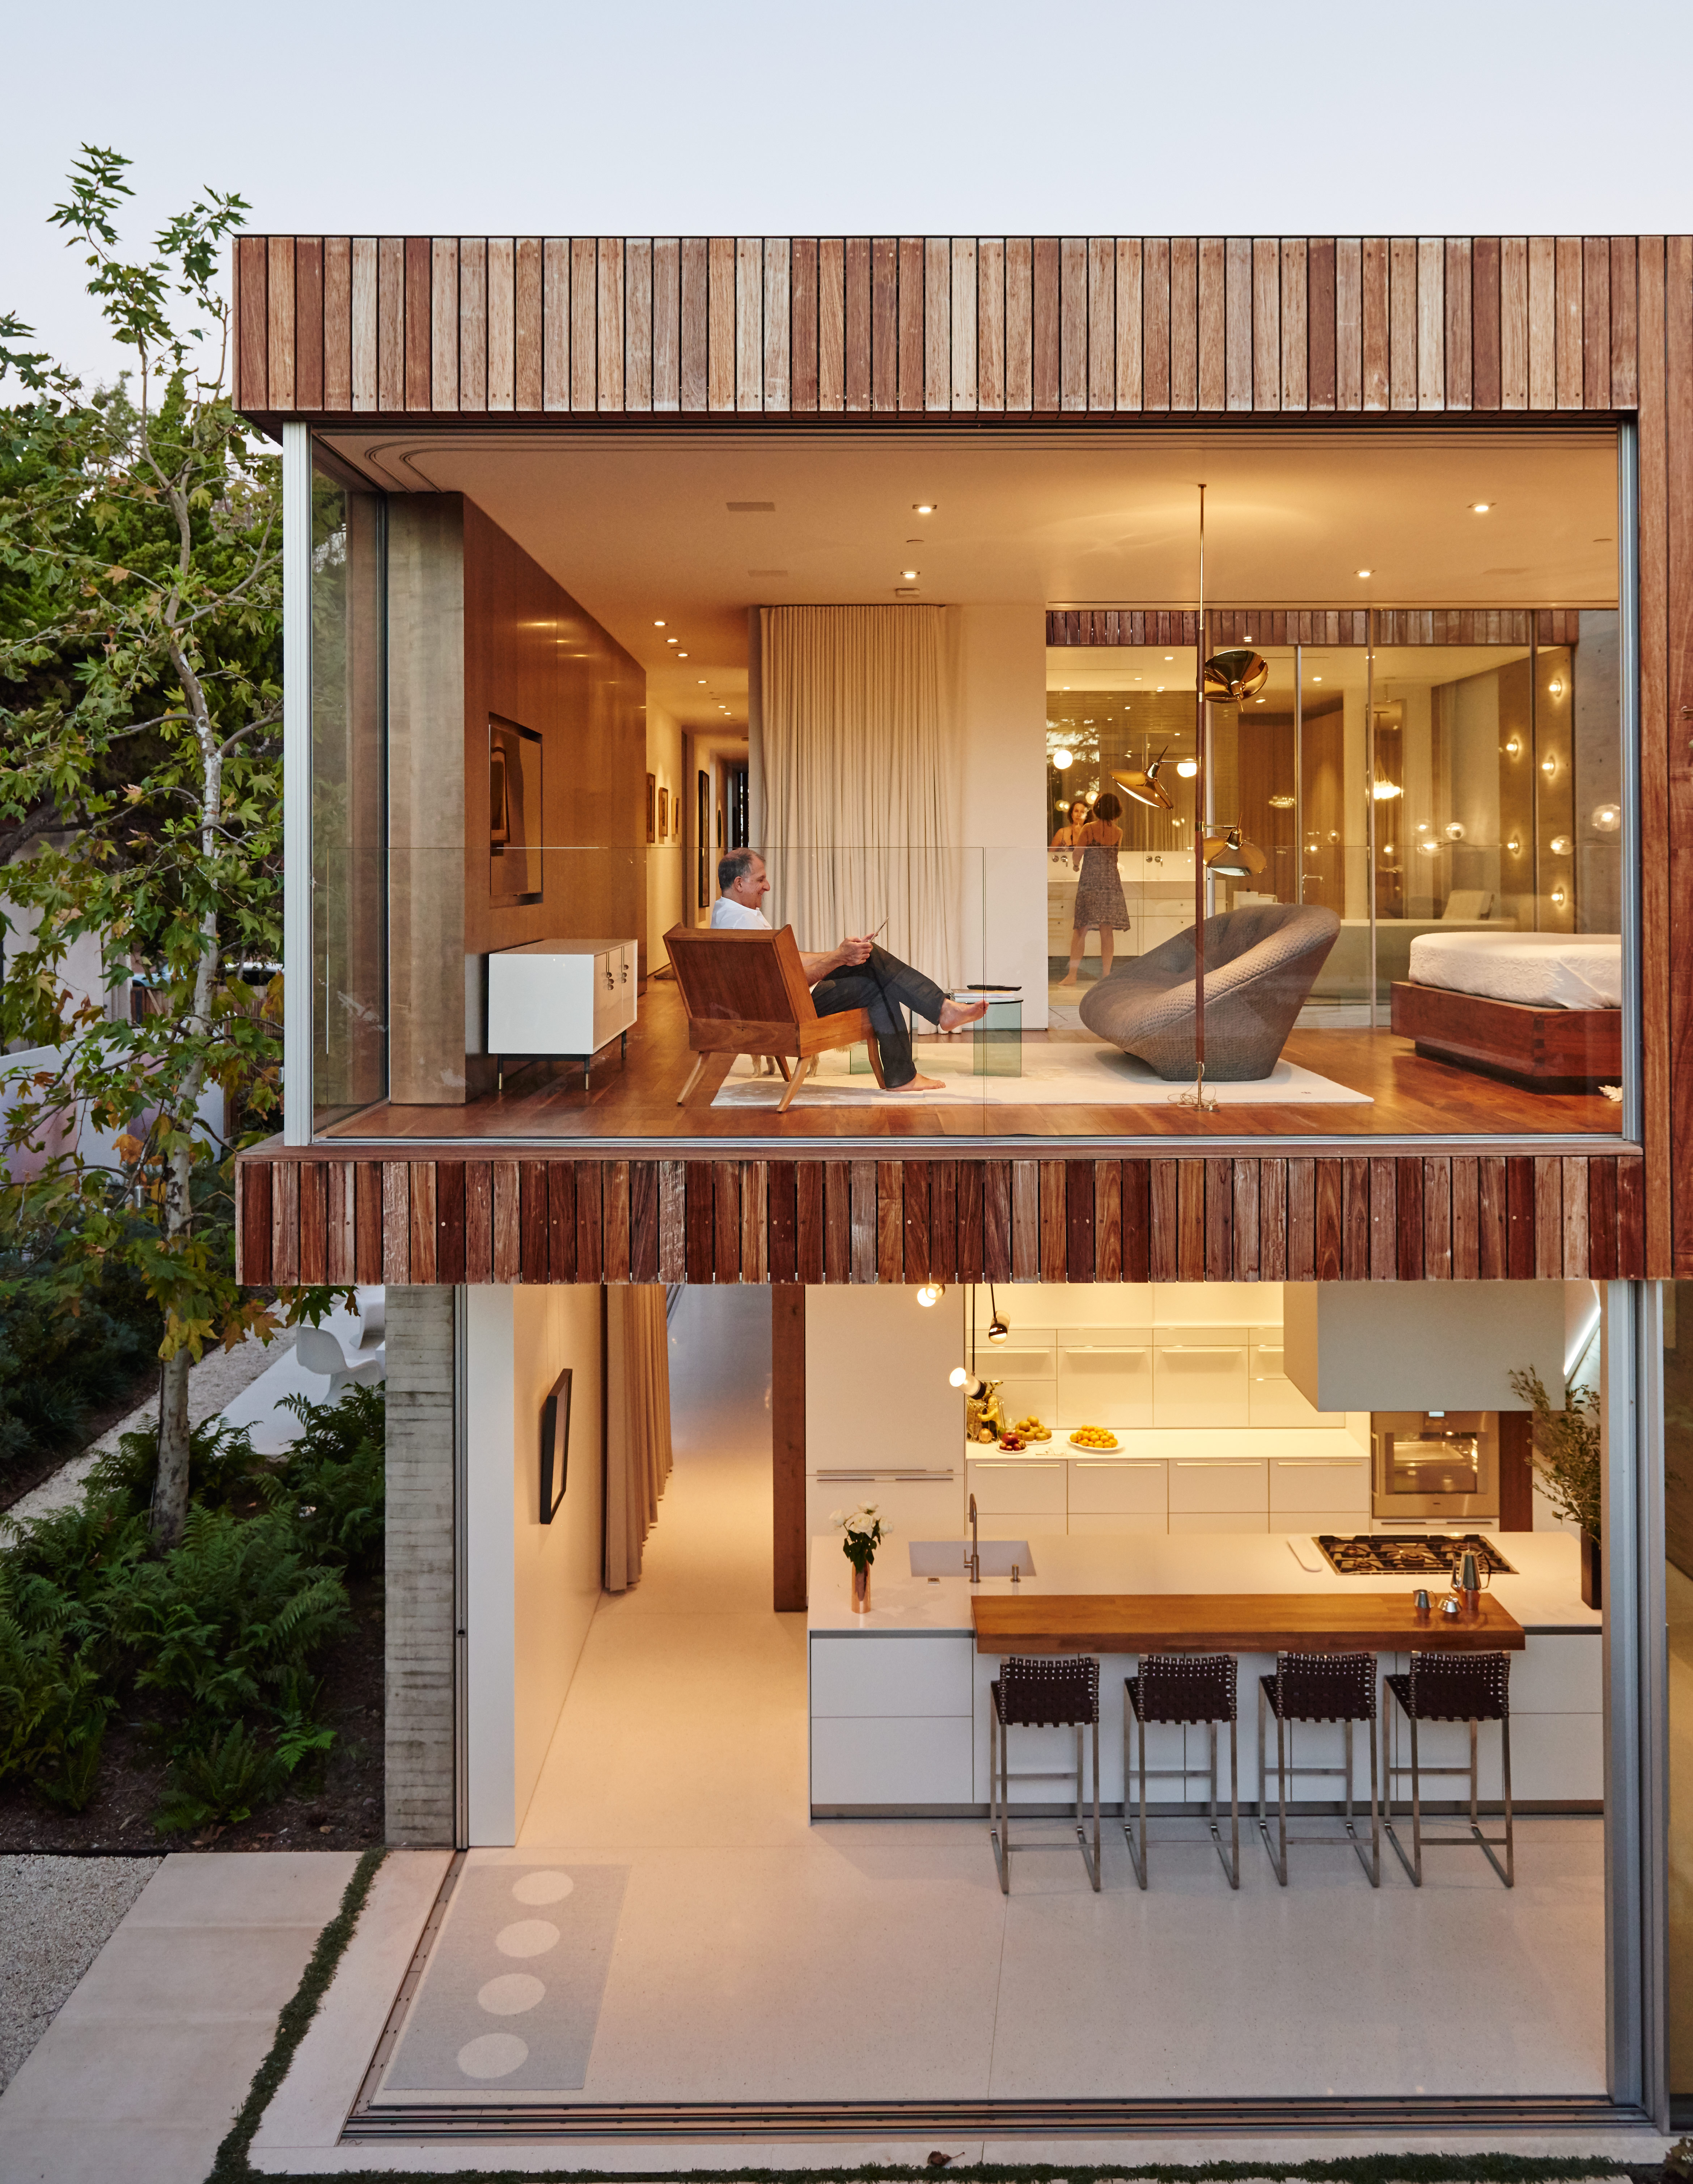 Santa Monica home with retractable wall system from Vitrocsa